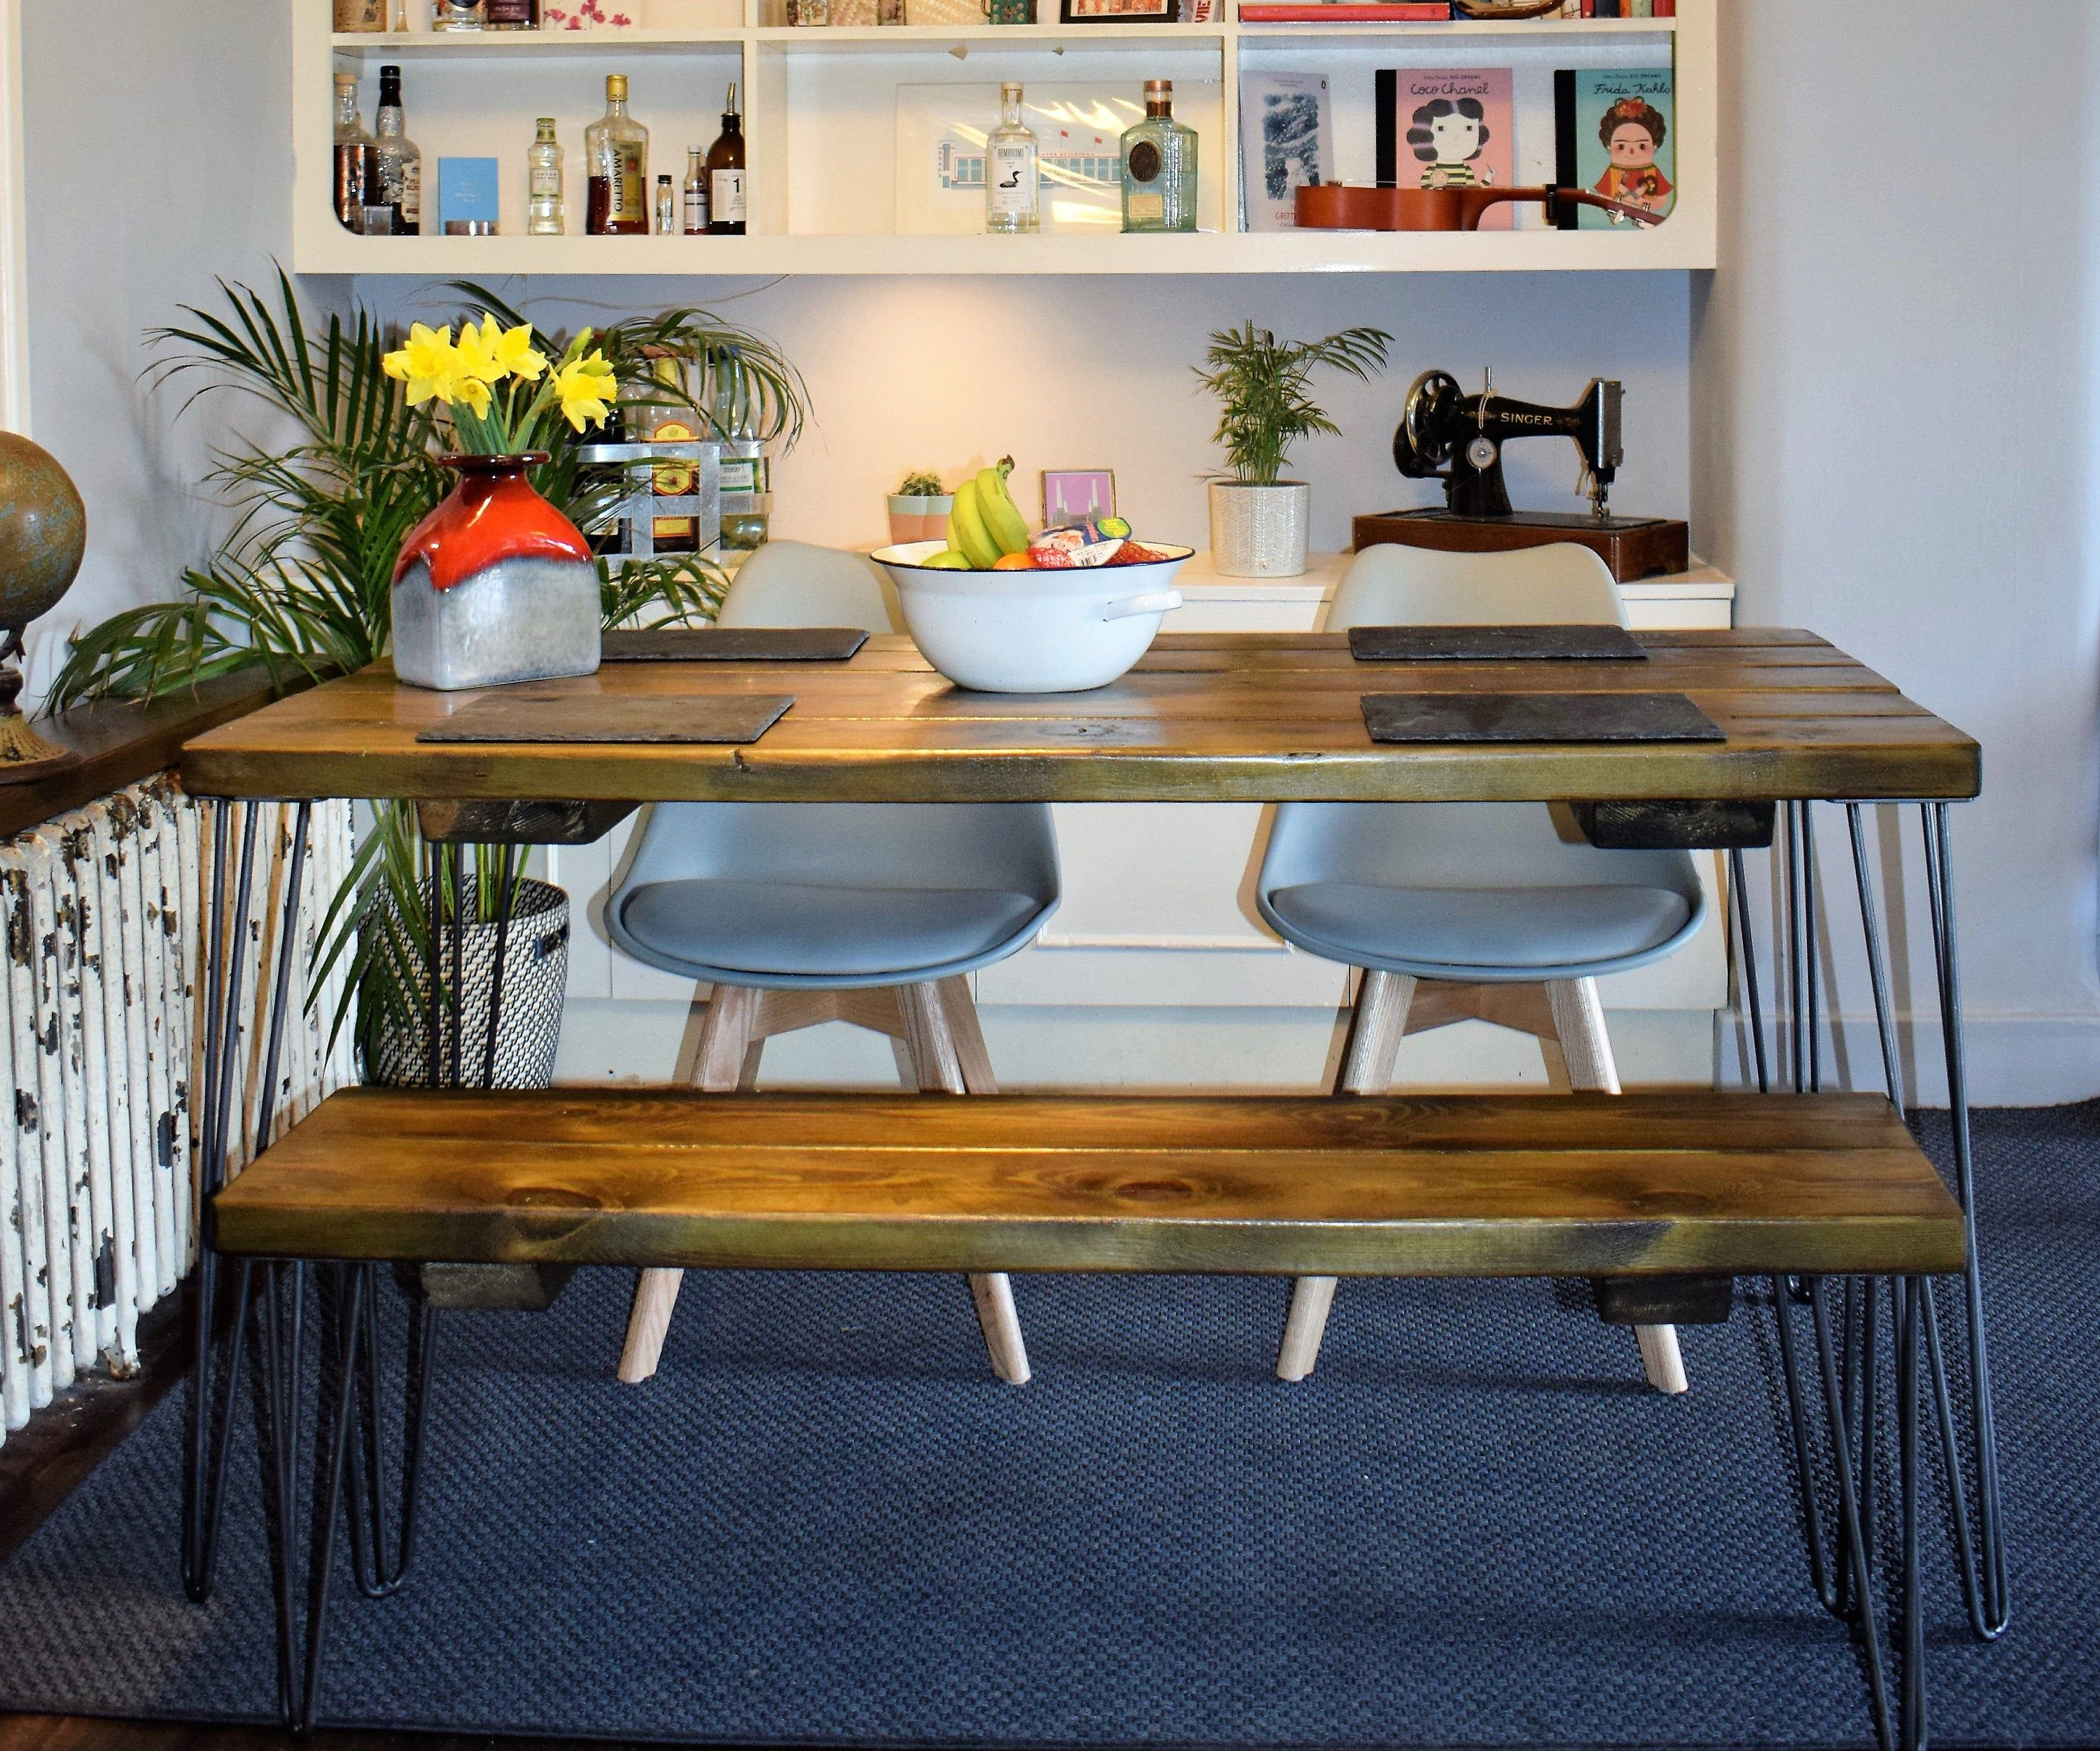 Reclaimed Wood Hairpin Leg Industrial Rustic Kitchen Table Bench